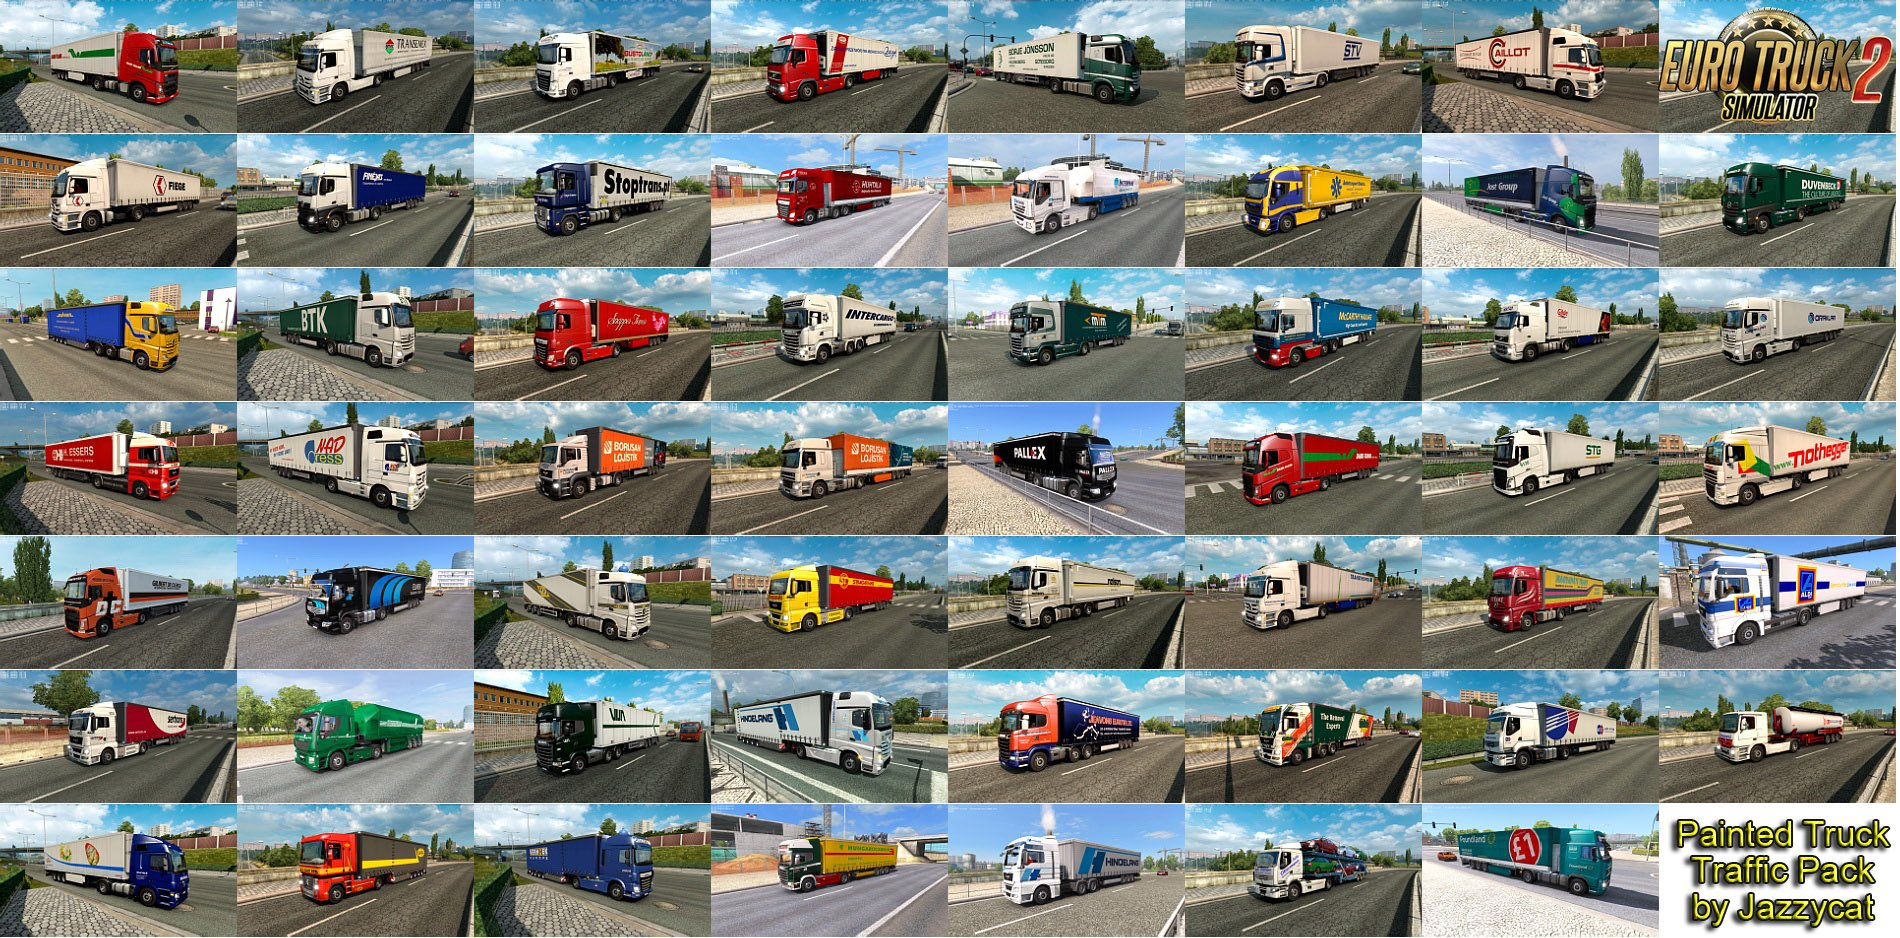 Painted Truck Traffic Pack v5.8 by Jazzycat